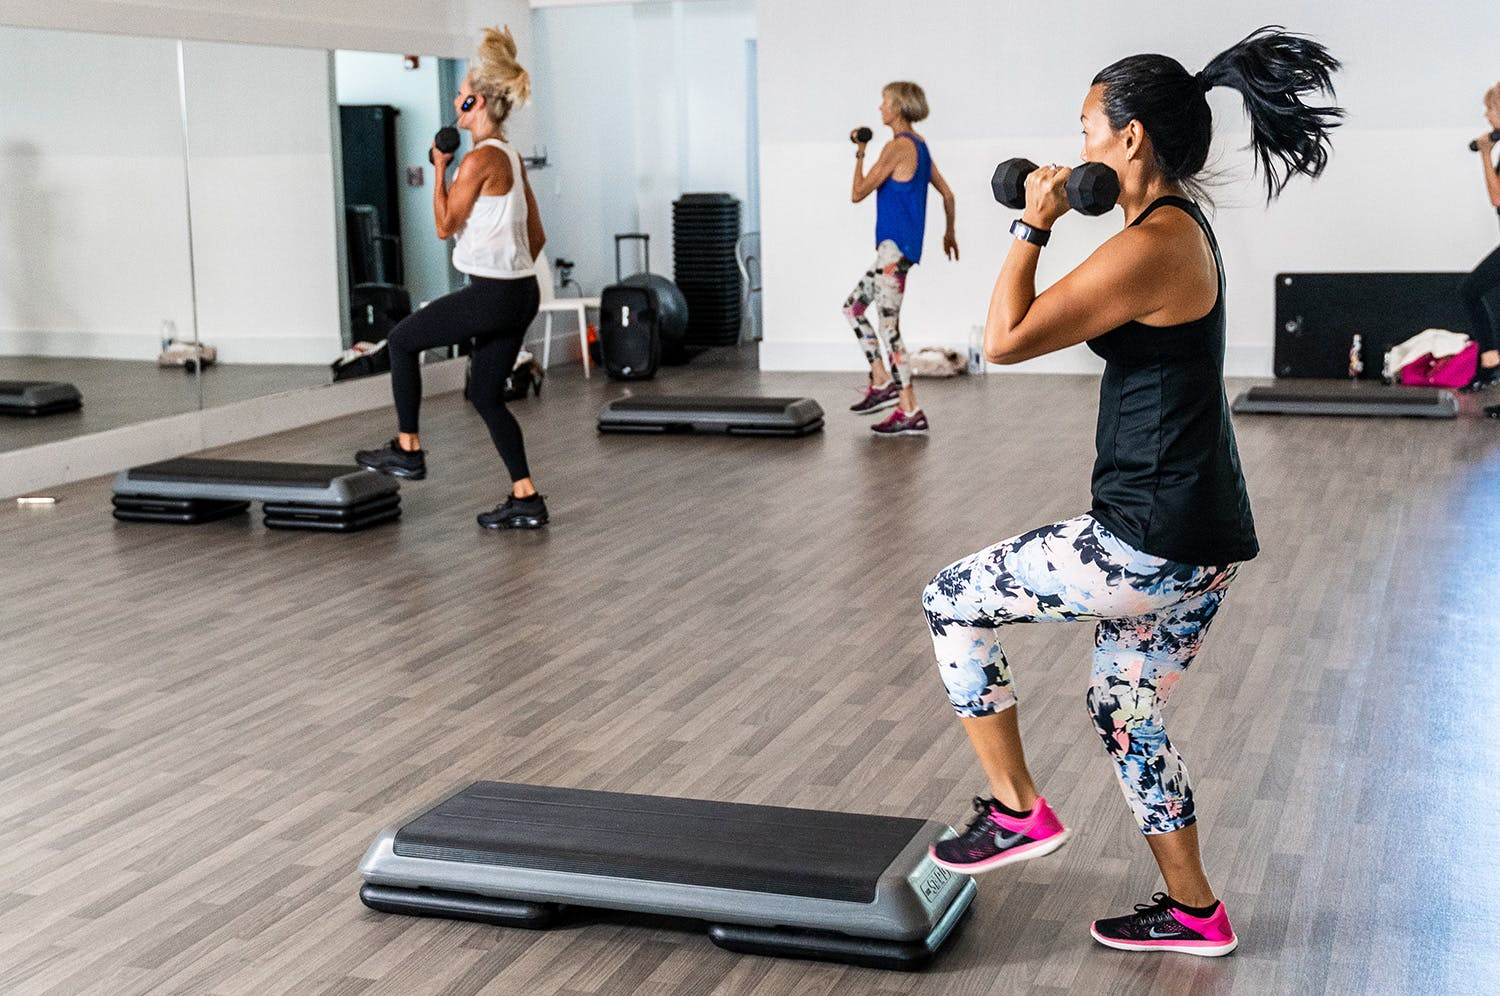 Members participating in tabata class at the gym